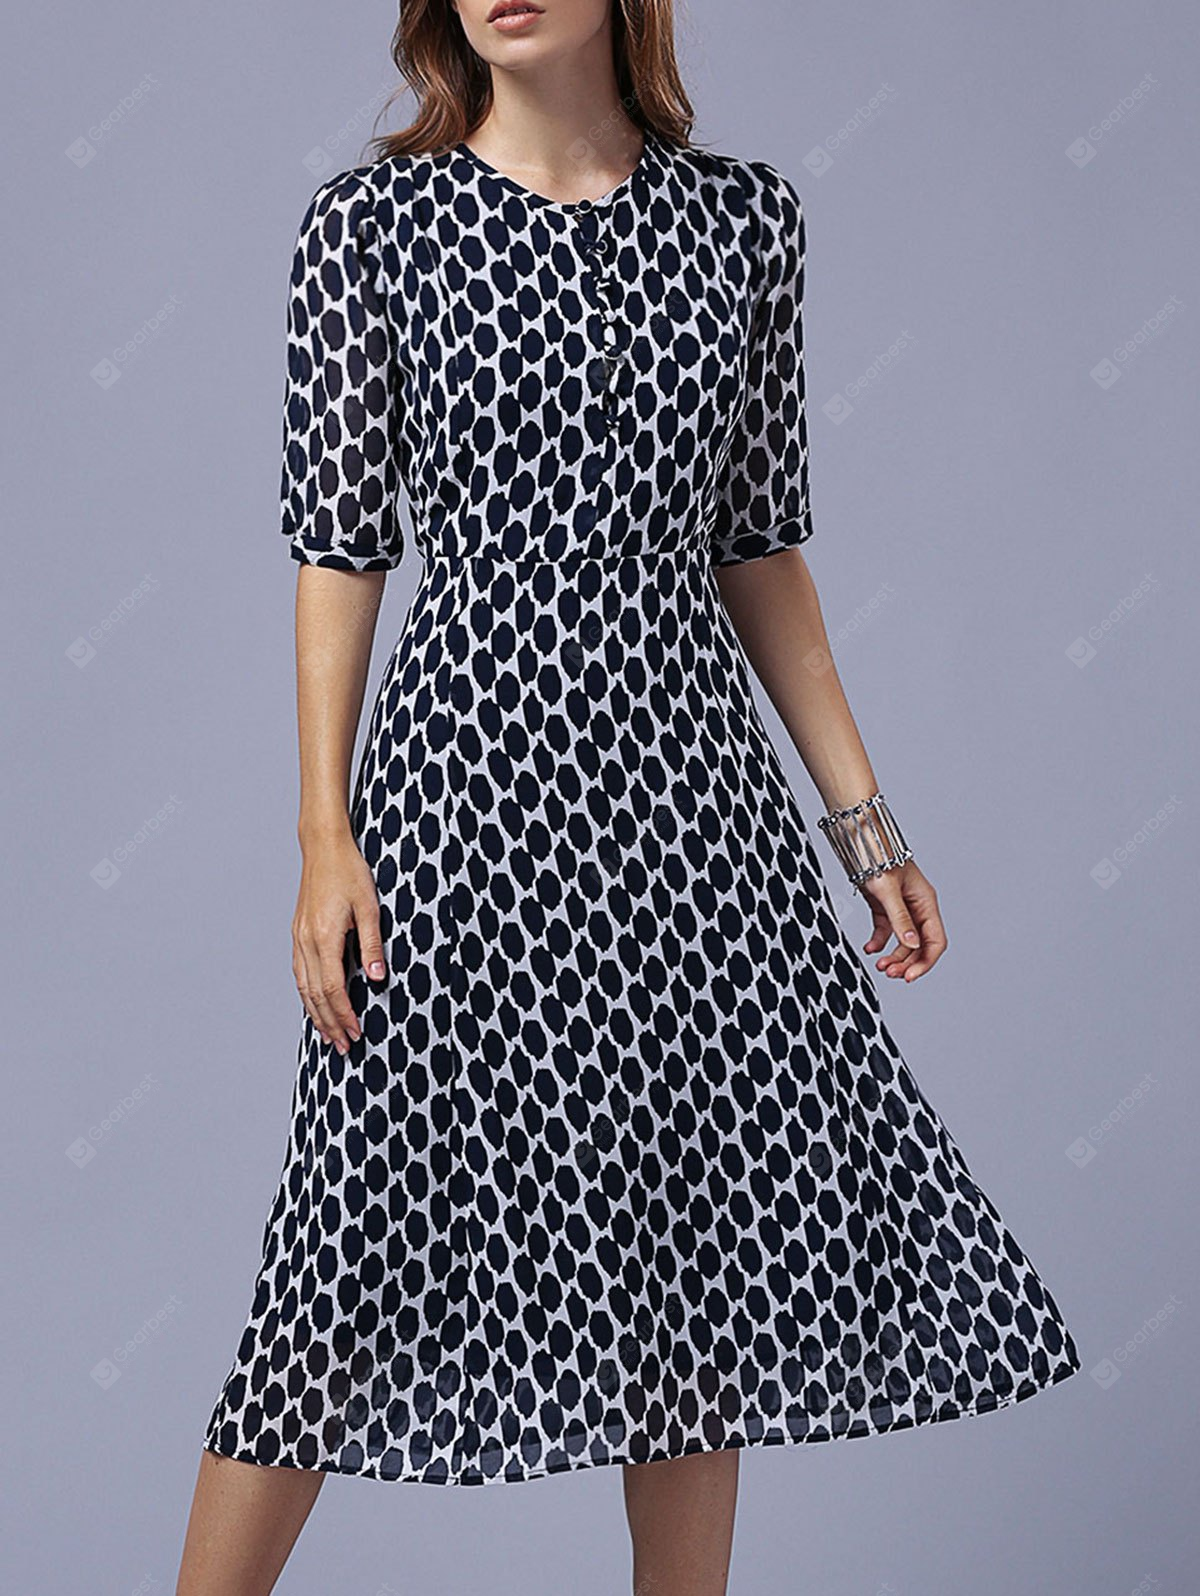 Neck Mode Ronde Half Sleeve Polka Dot Dress For Women